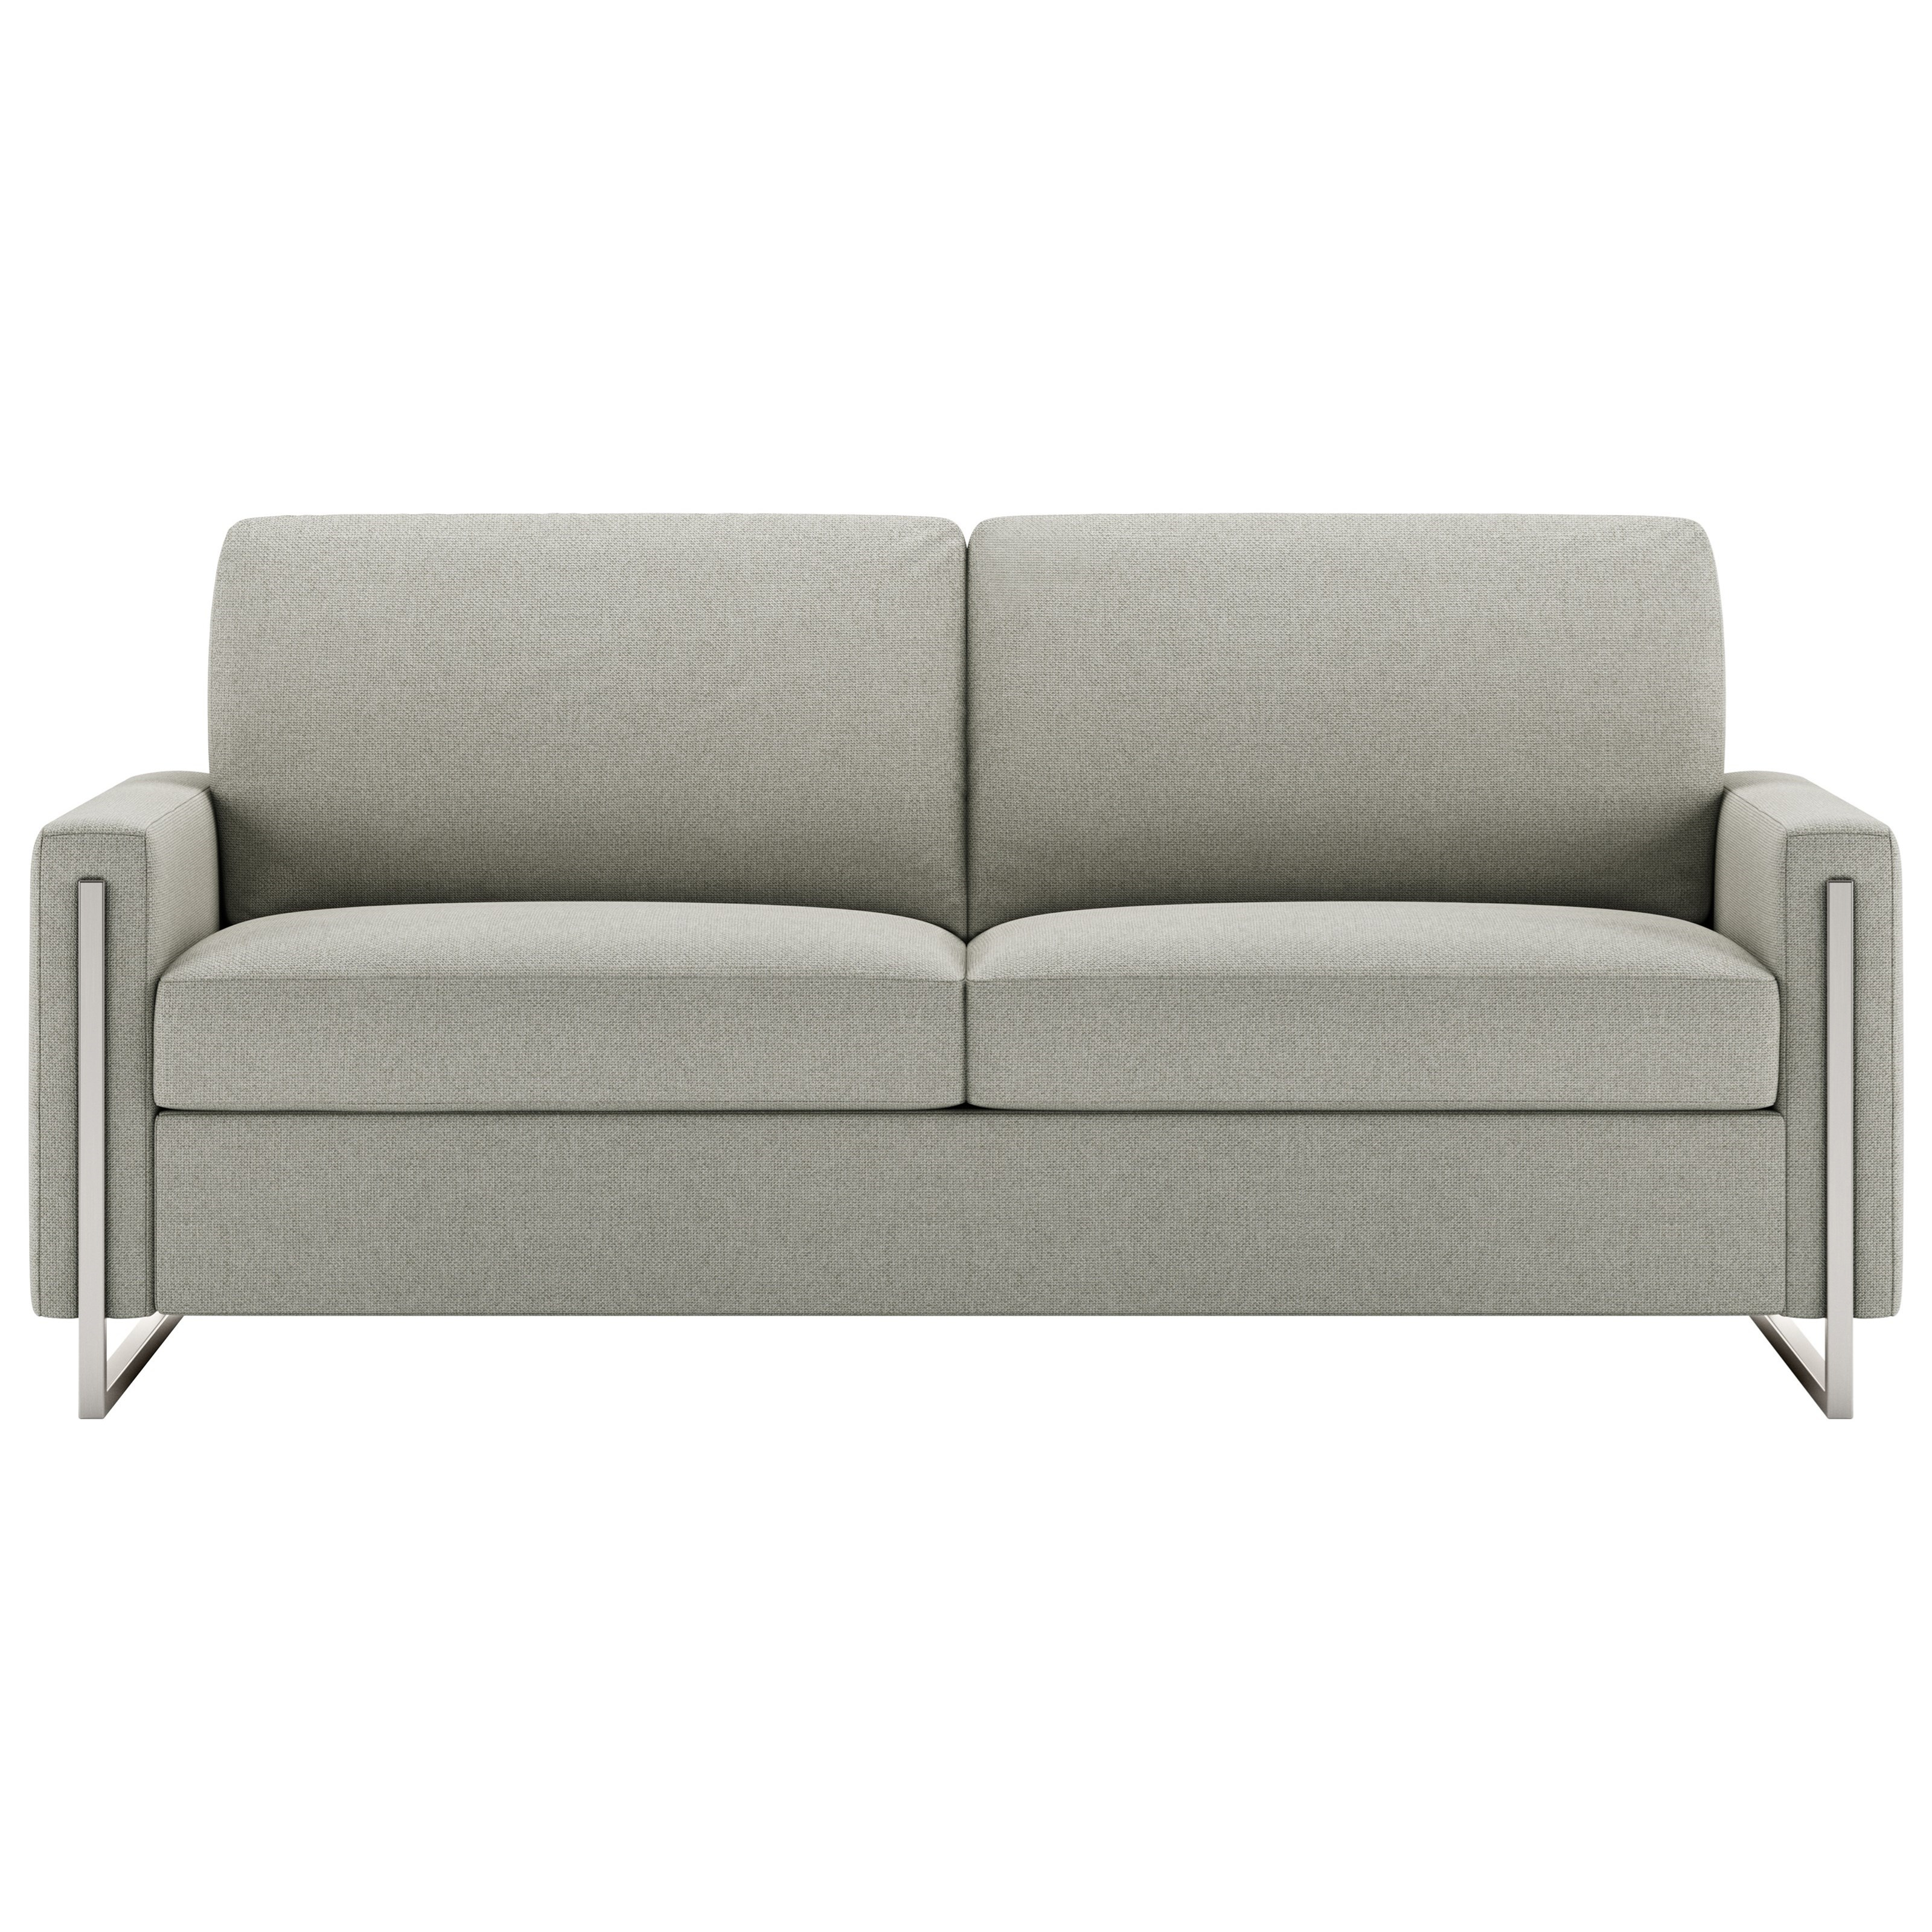 Sulley Queen Sofa Sleeper by American Leather at Saugerties Furniture Mart